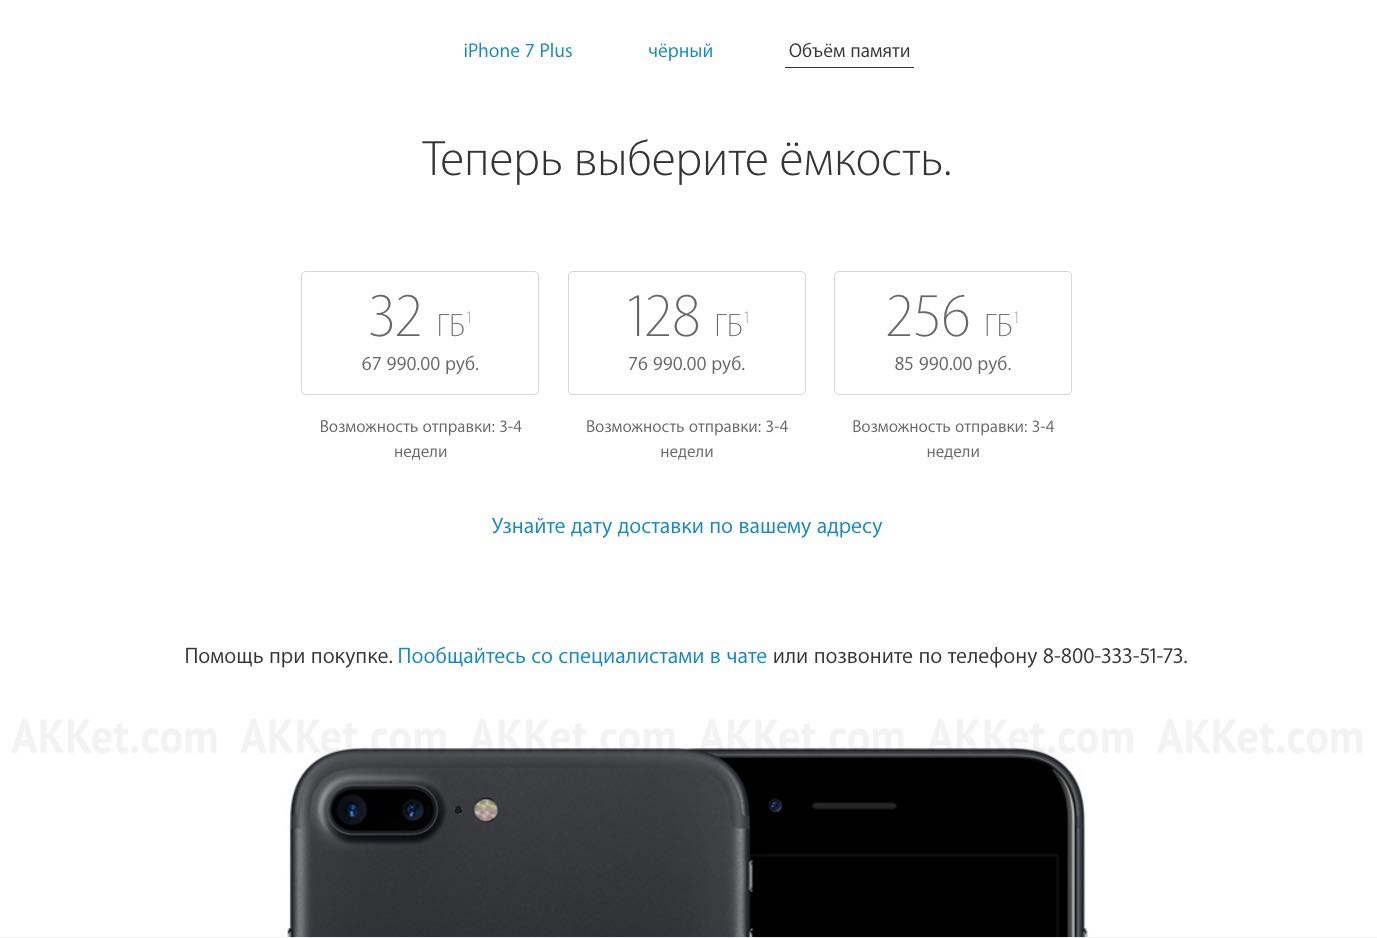 Apple iPhone 7 Plus Russia Buy Apple Store Online 4